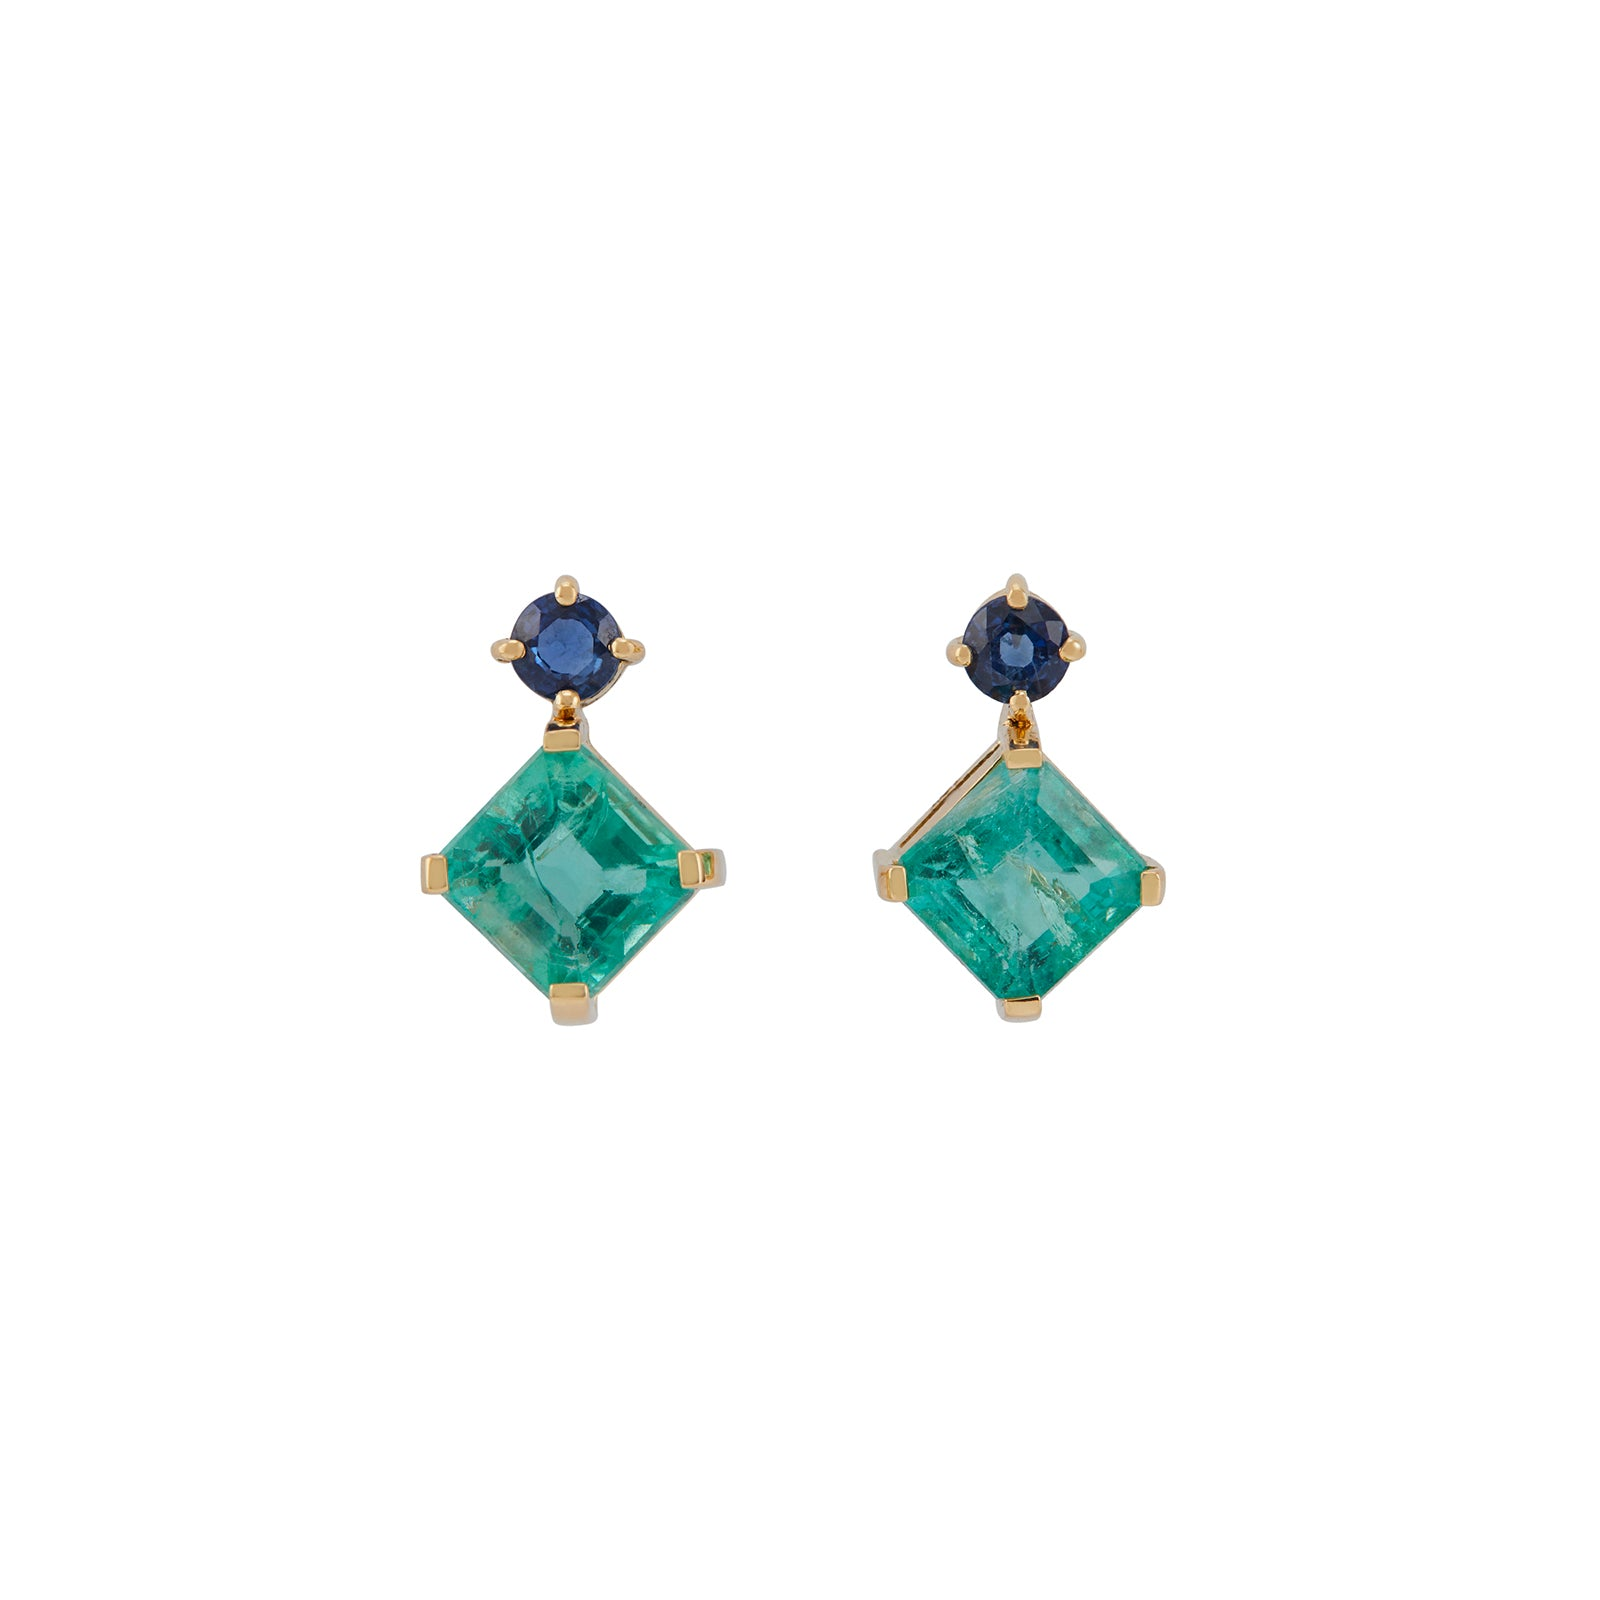 YI Collection Sapphire & Emerald Geometry Earrings - Earrings - Broken English Jewelry